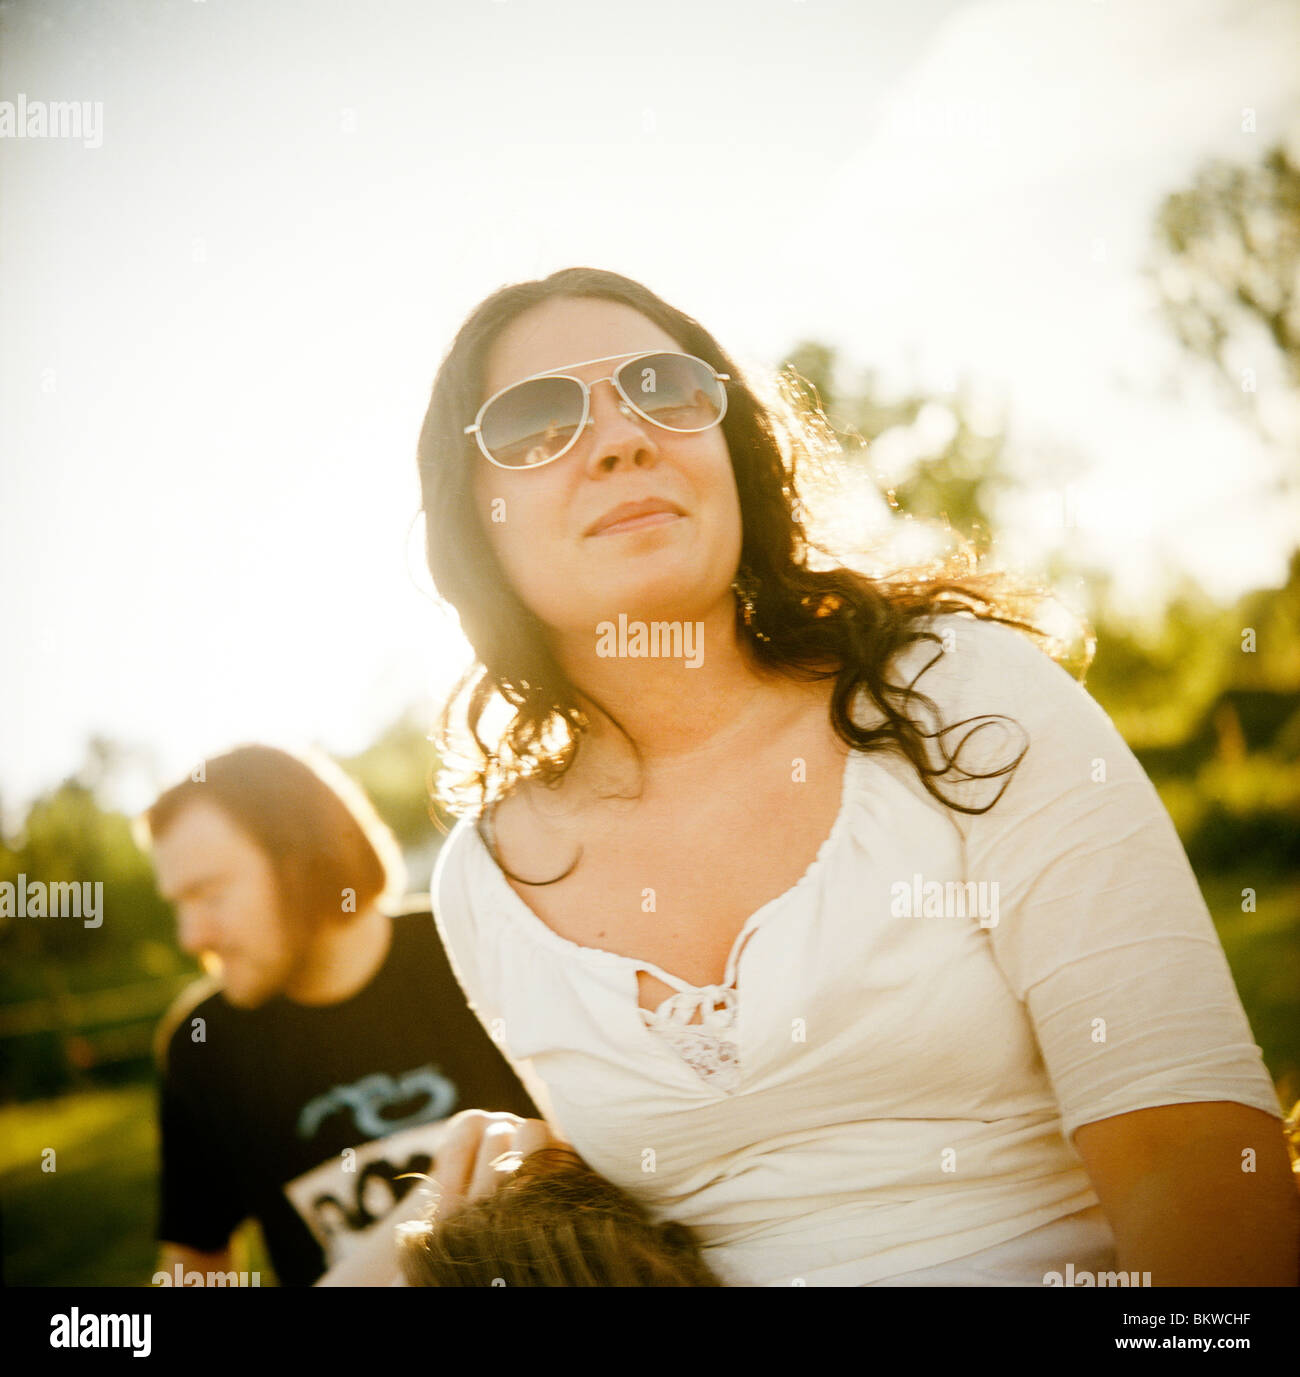 Youths in park - Stock Image